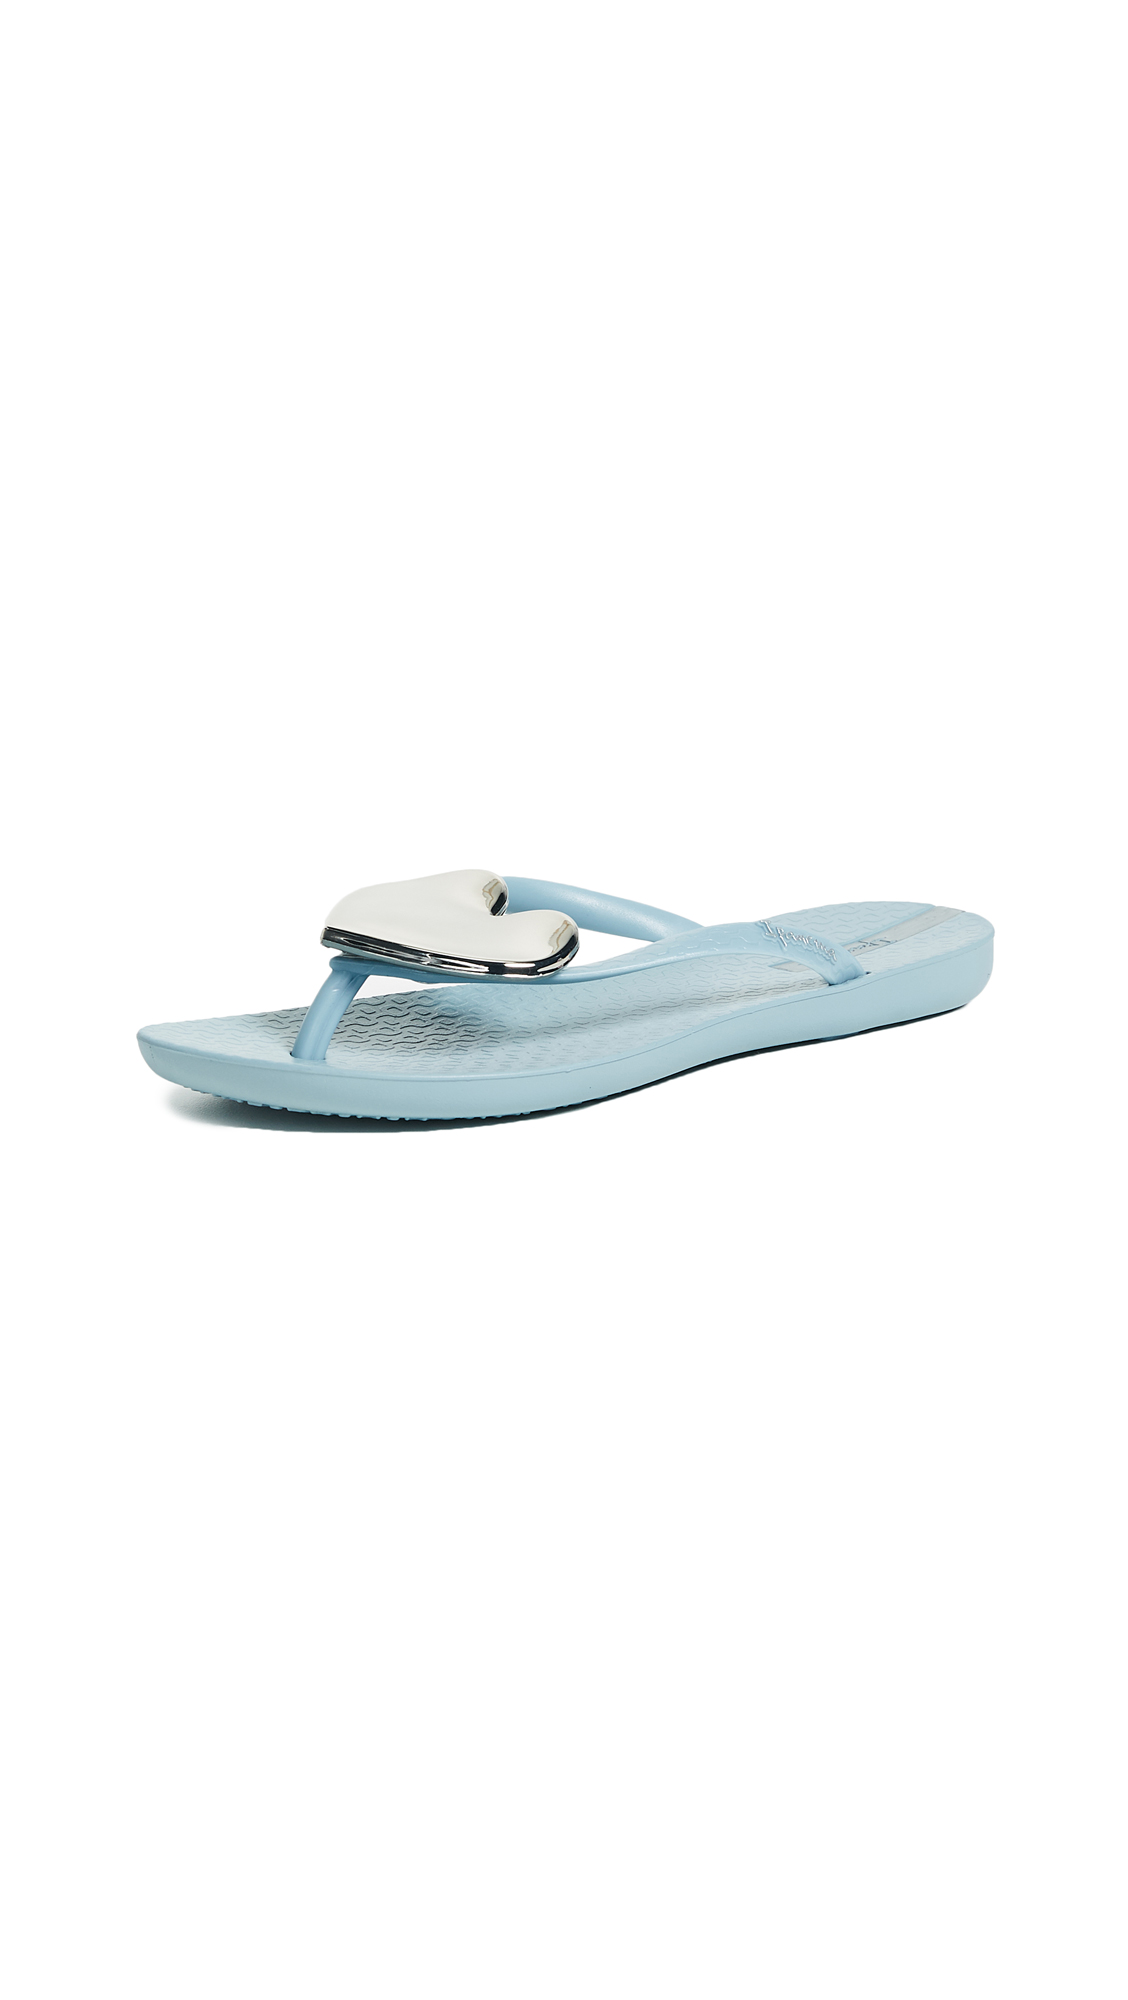 Ipanema Wave Heart Flip Flops - Gray/Silver